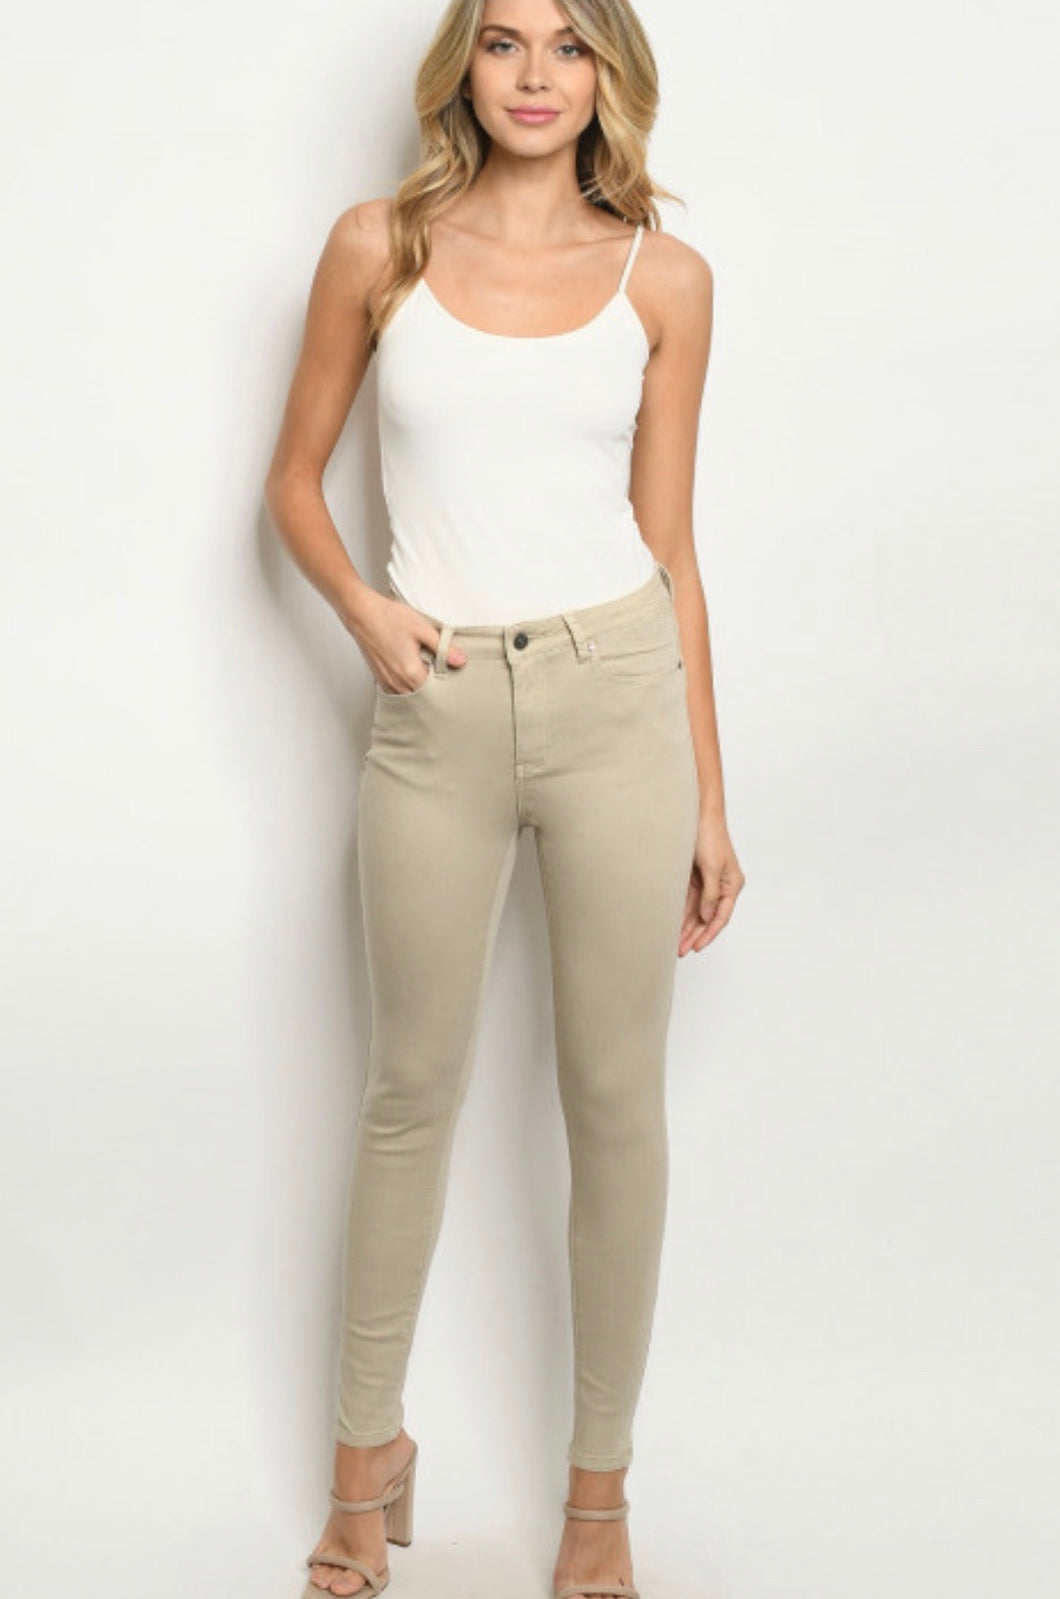 Nude denim pants 00069